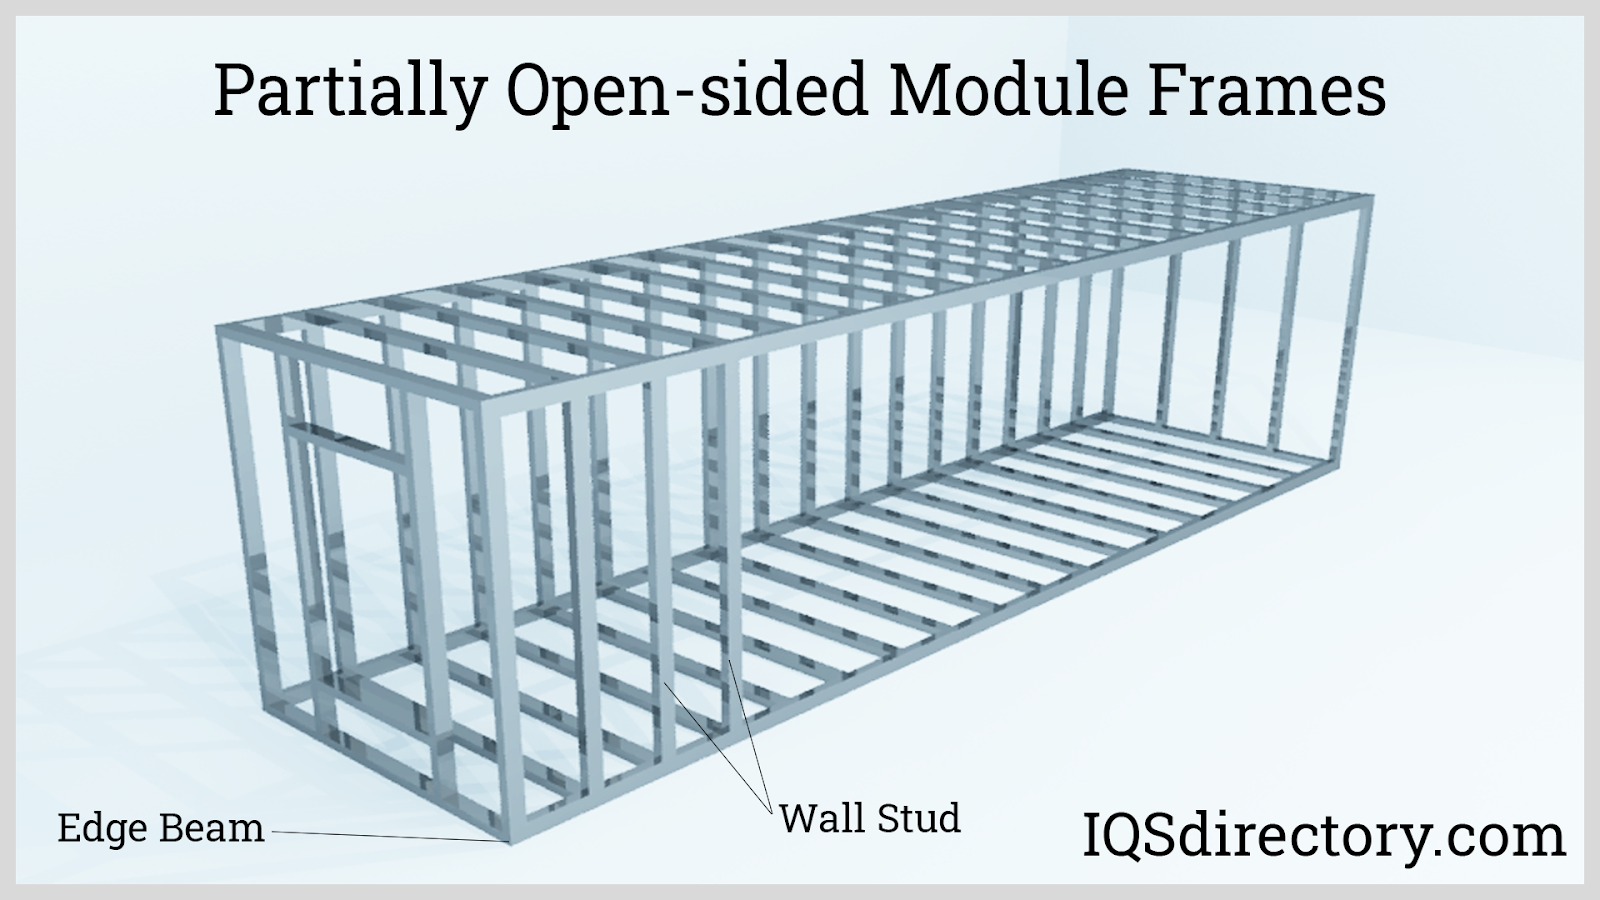 Partially Open-sided Module Frames